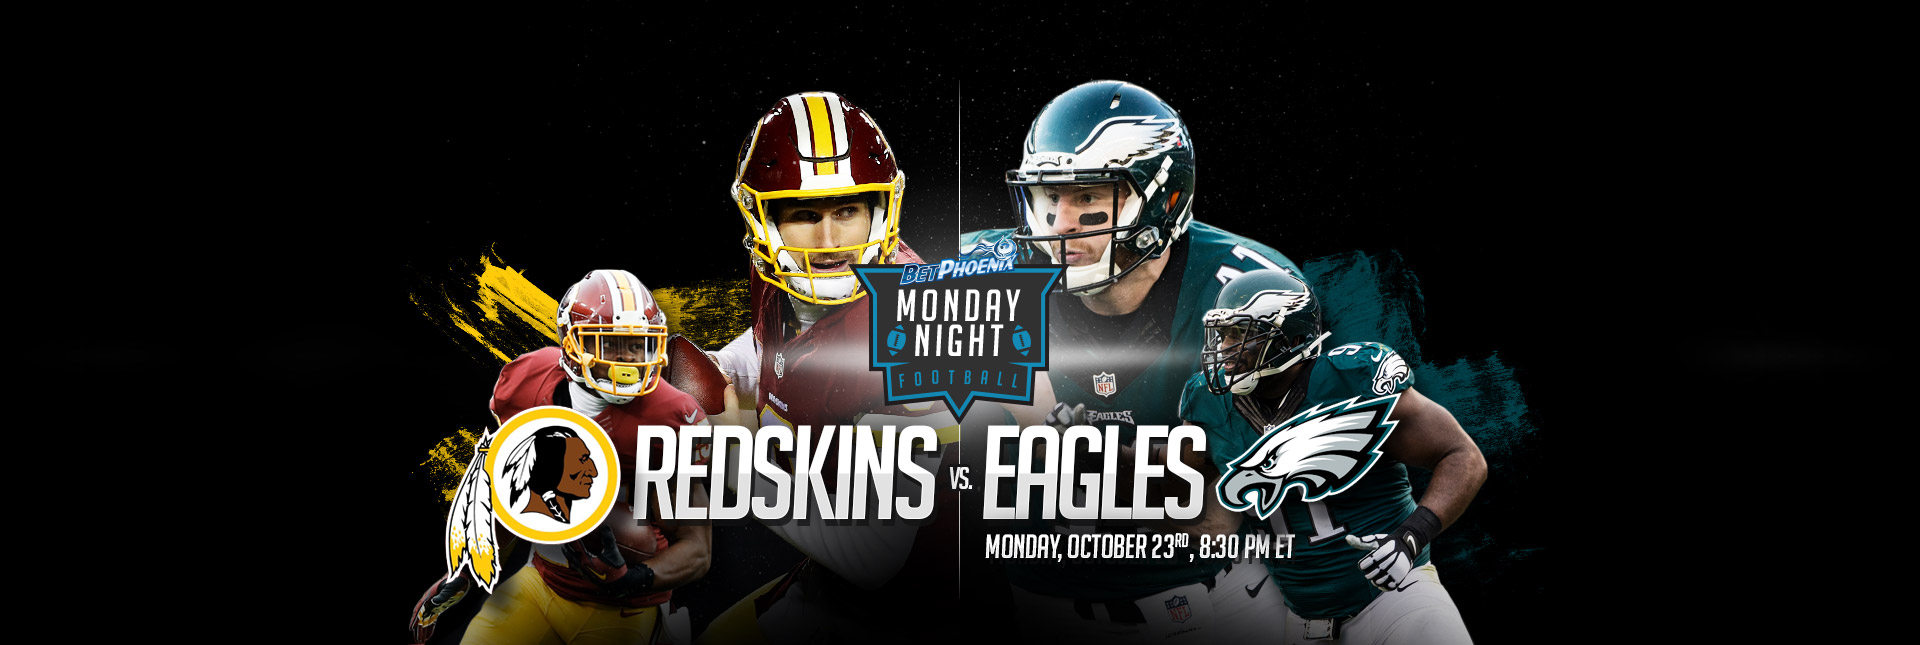 MNF - Redskins vs Eagles